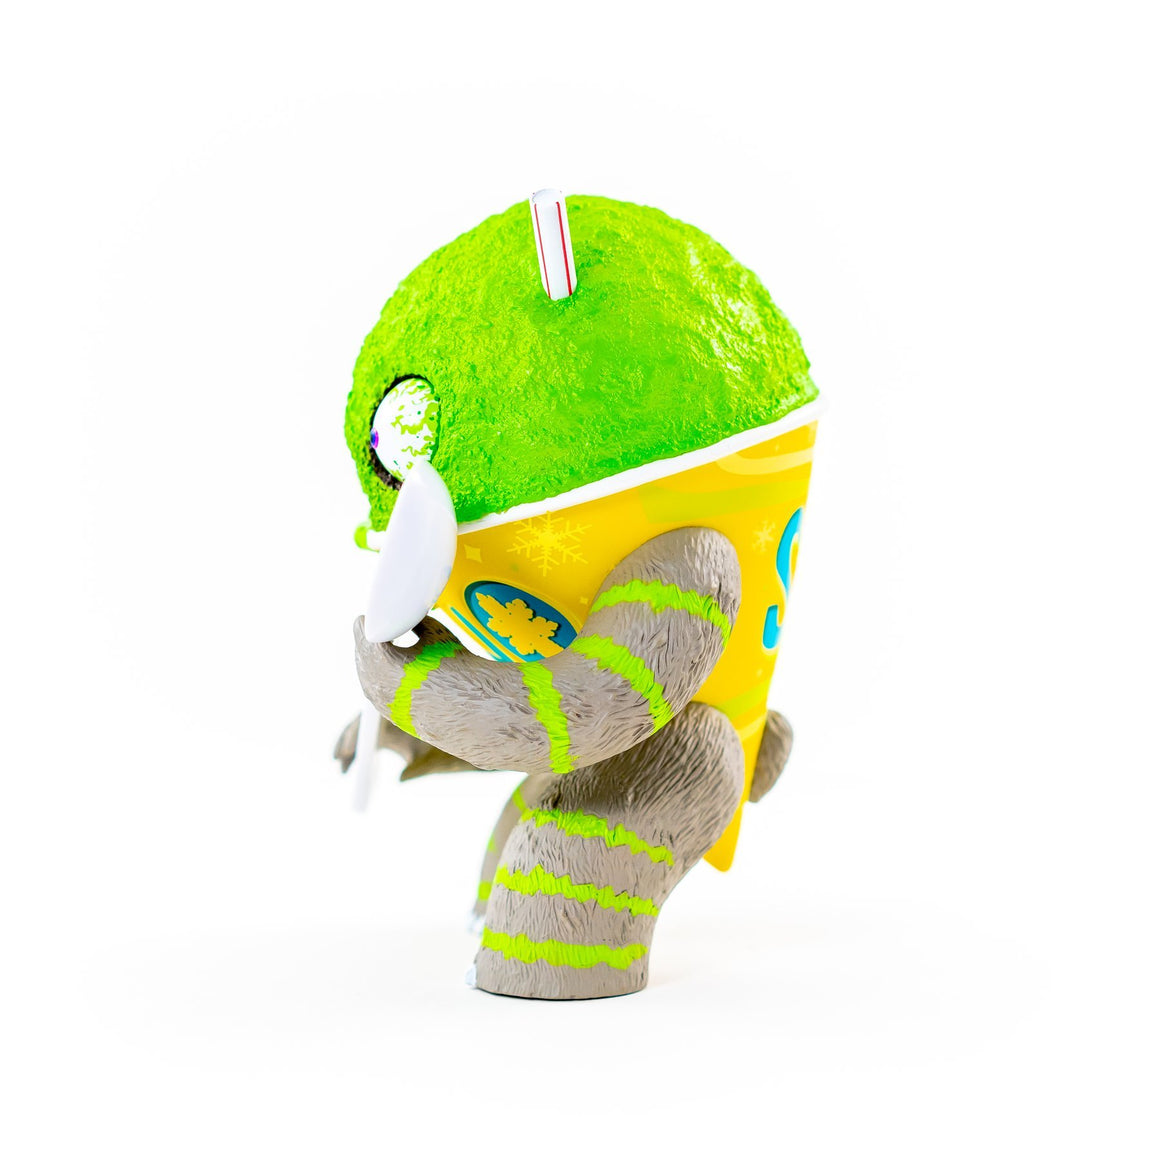 Abominable Snow Cone 2nd Serving - Lime Edition by Jason Limon x Martian Toys